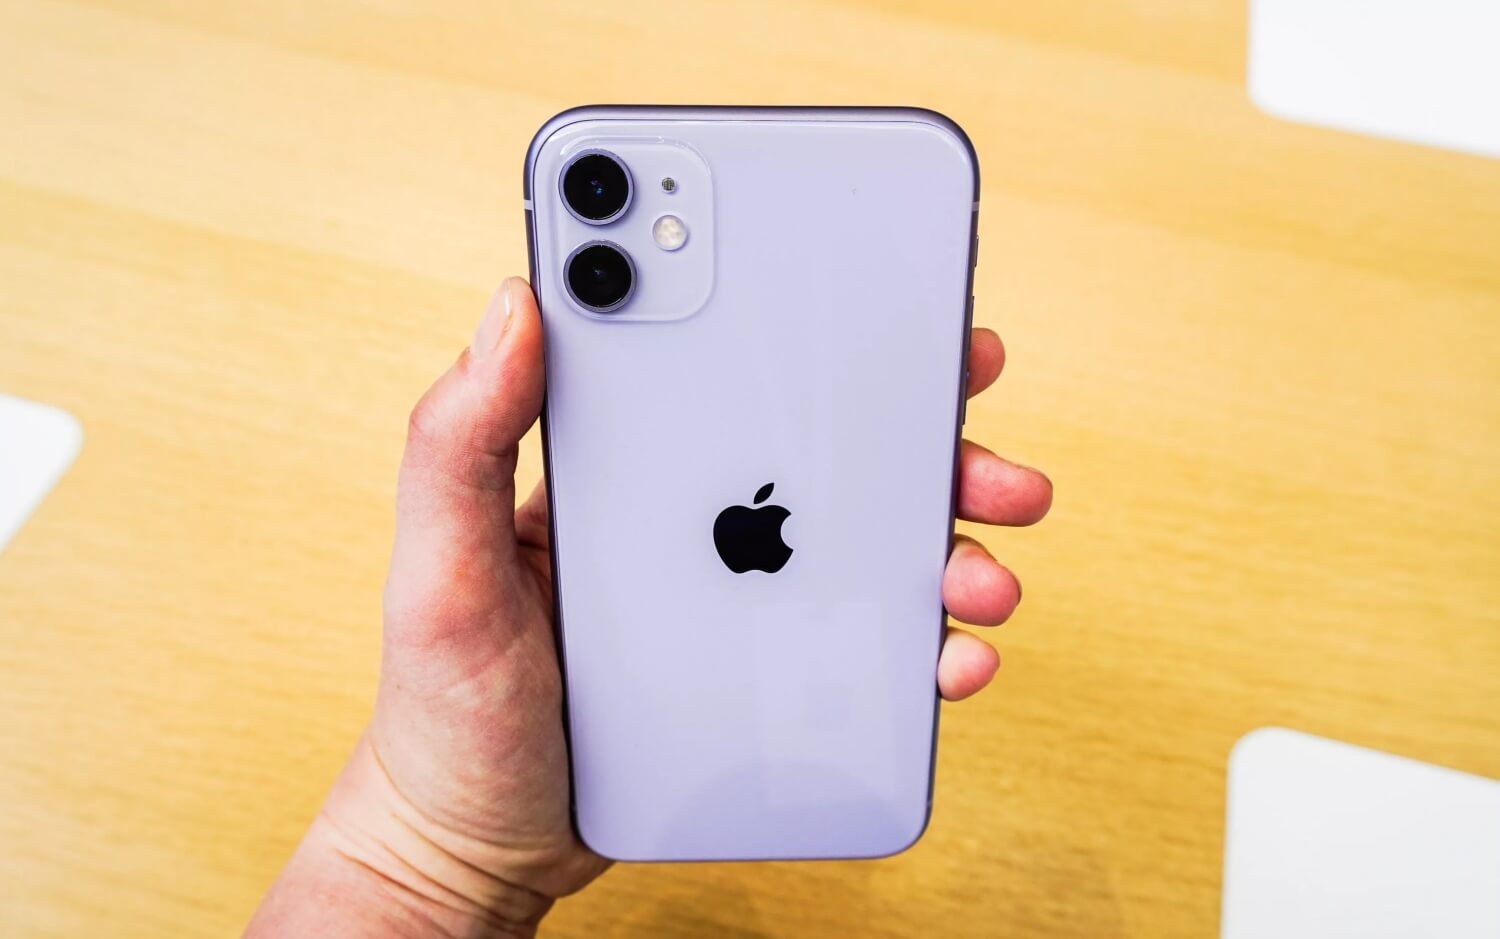 How Apple's new iPhone 11 compares to last year's iPhone XR